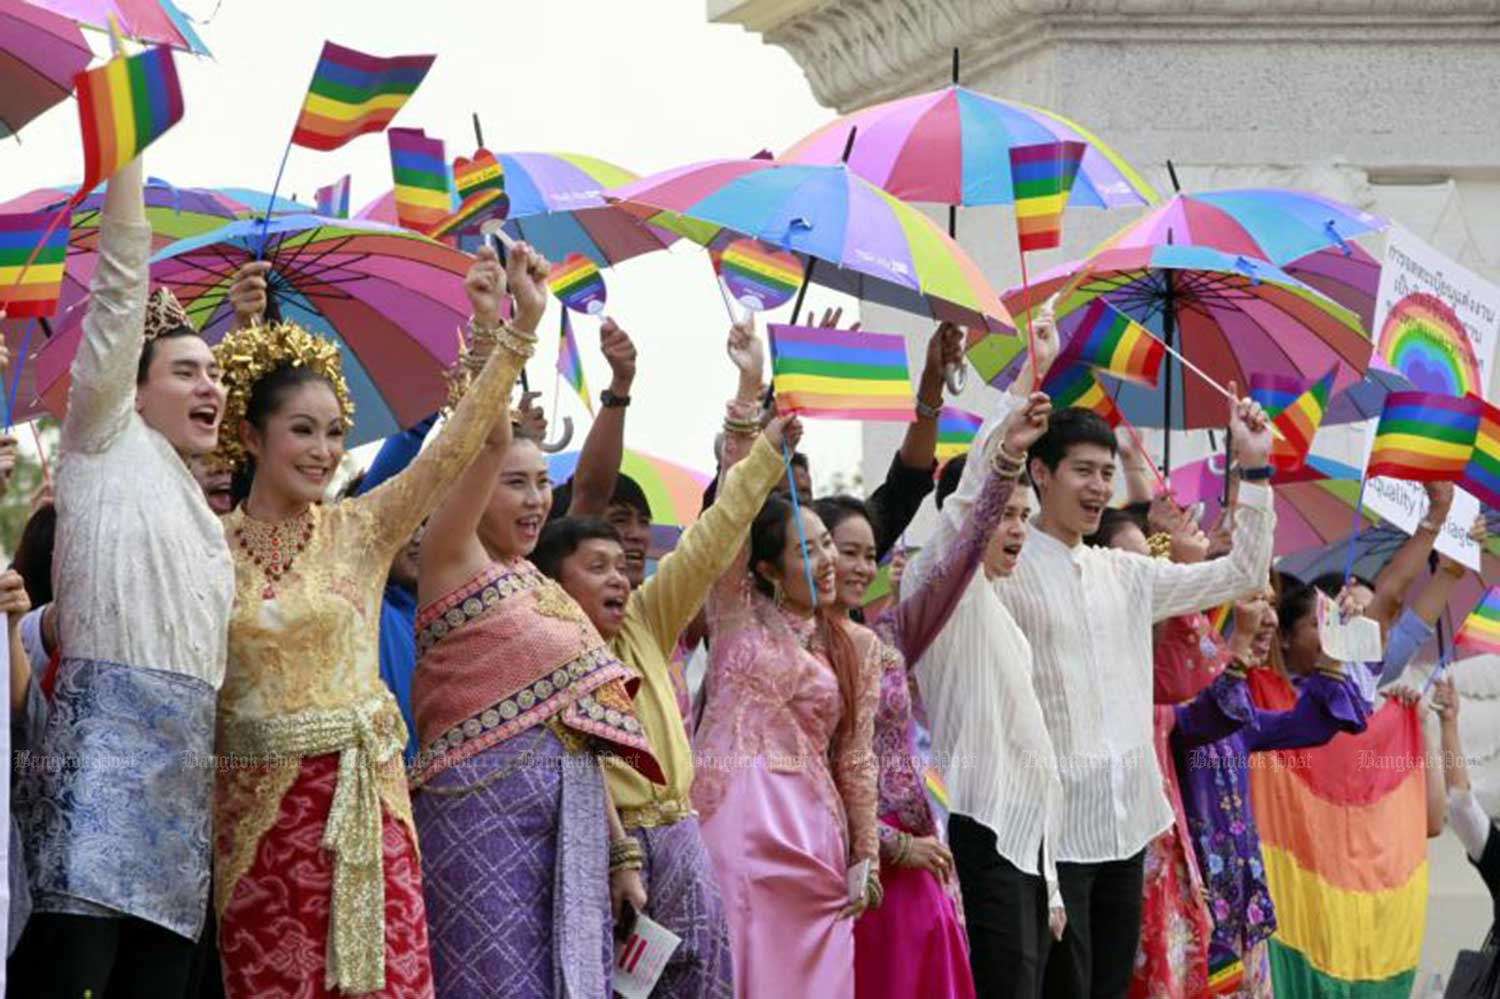 LONG PROCESS: Campaigners call for public awareness on LGBT rights and same-sex marriage during a parade from the Democracy Monument to Sanam Luang, organised by the Foundation for Sexual Orientation and Gender Identity Rights and Justice (FOR-SOGI) on Dec 15, 2015. (File photo by Apichart Jinakul)